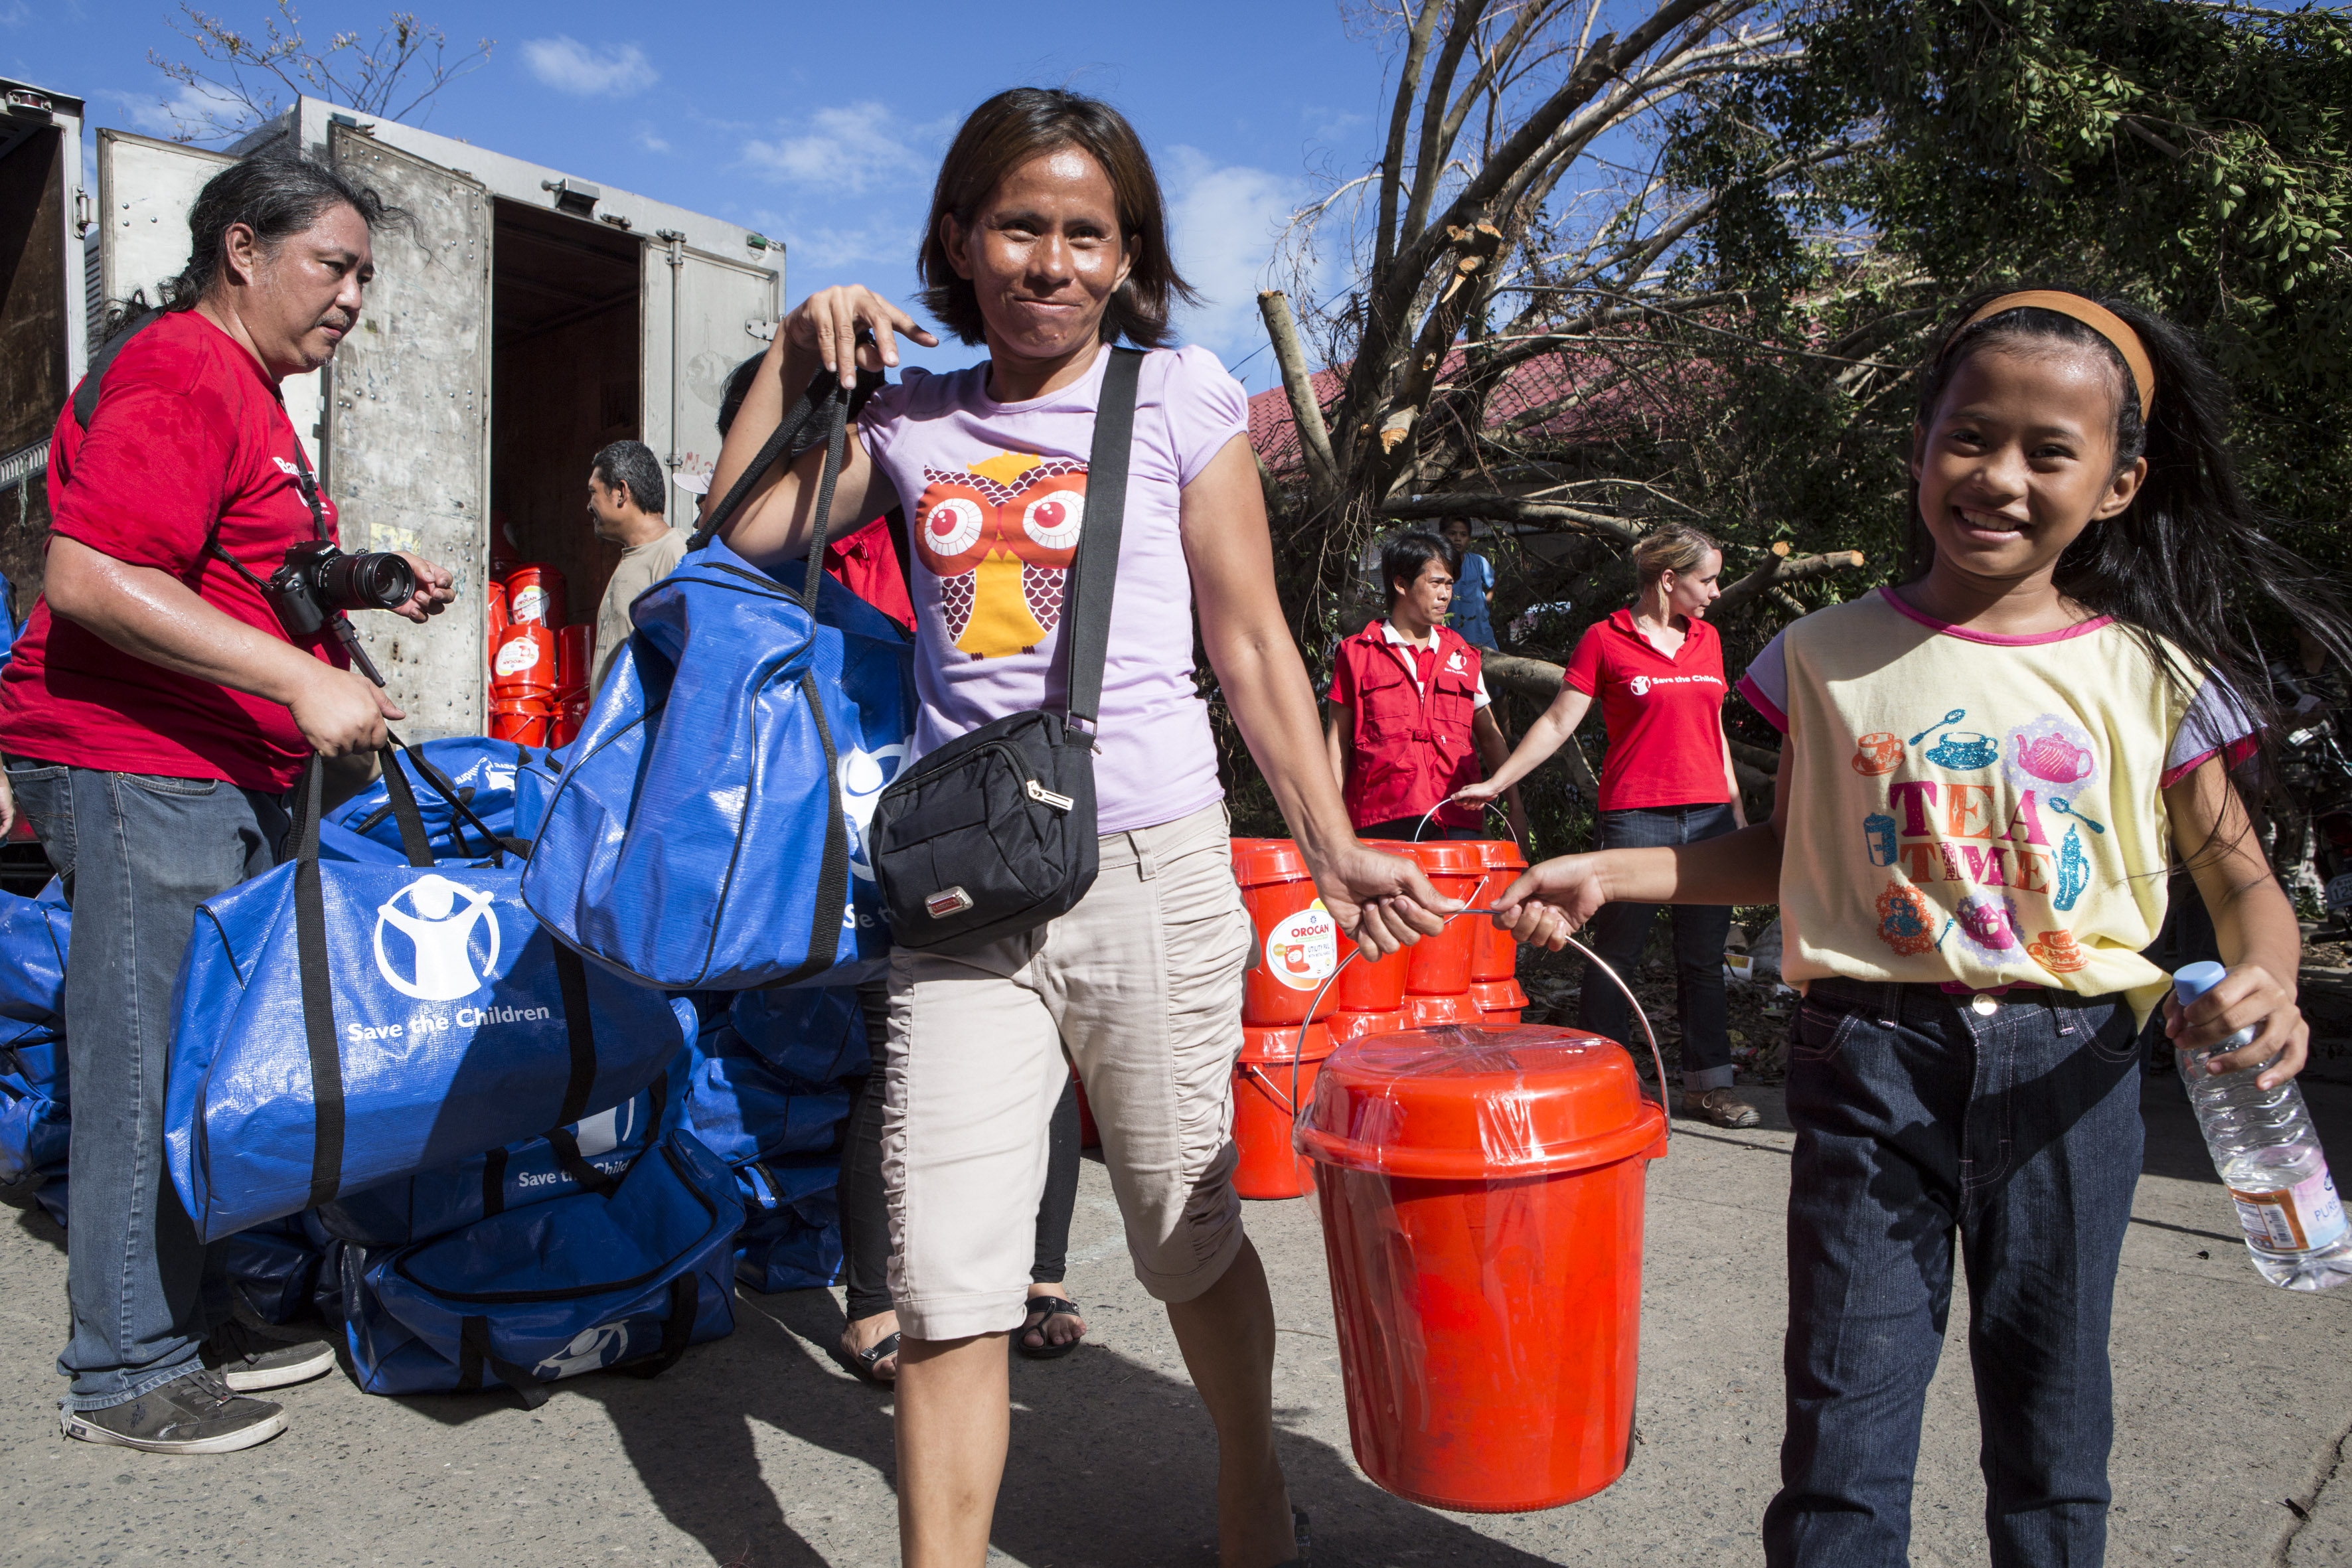 Beneficiaries with supplies from Save the Children.